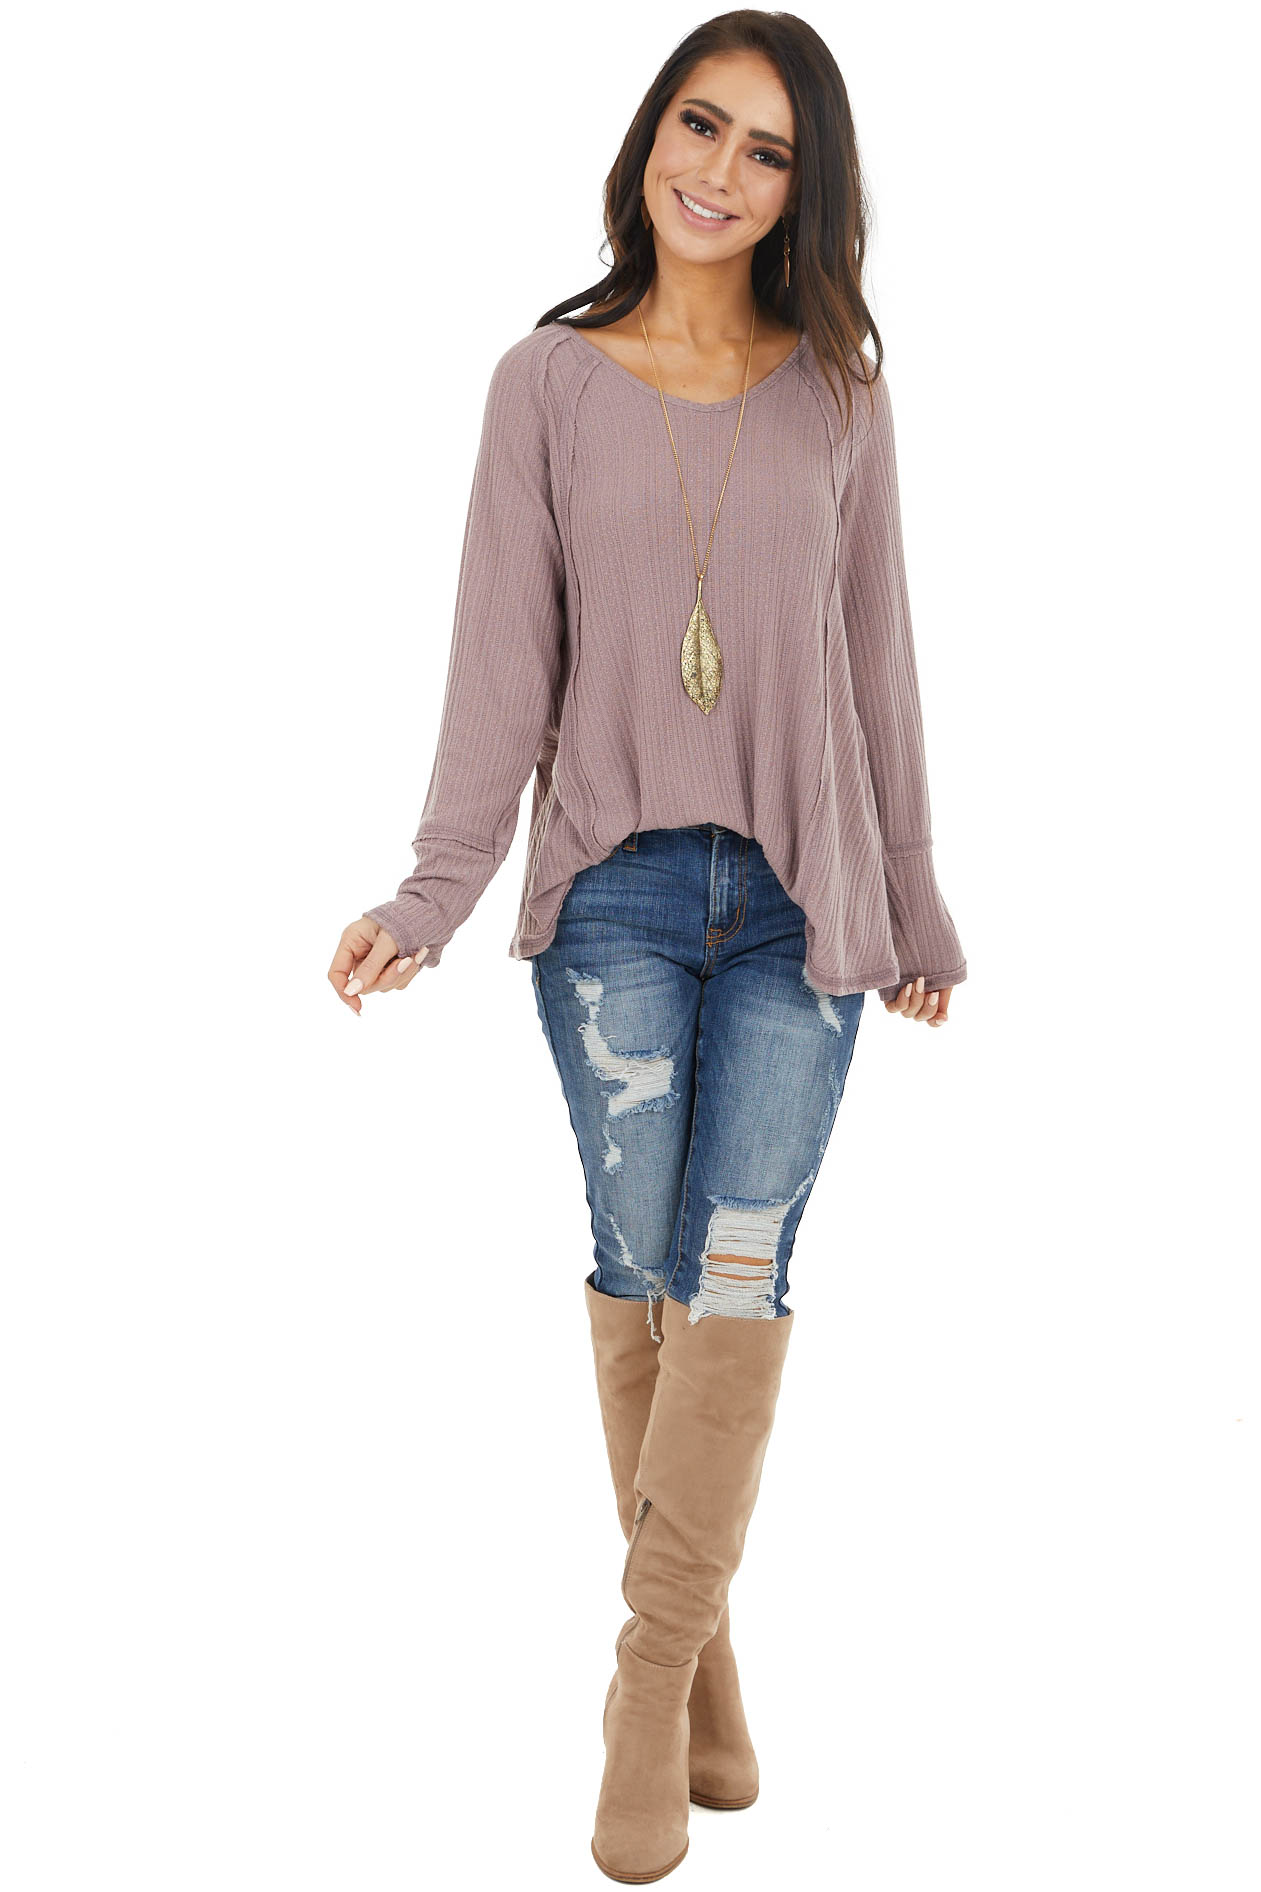 Mauve Long Sleeve Textured Knit Tunic Top with Raw Edges